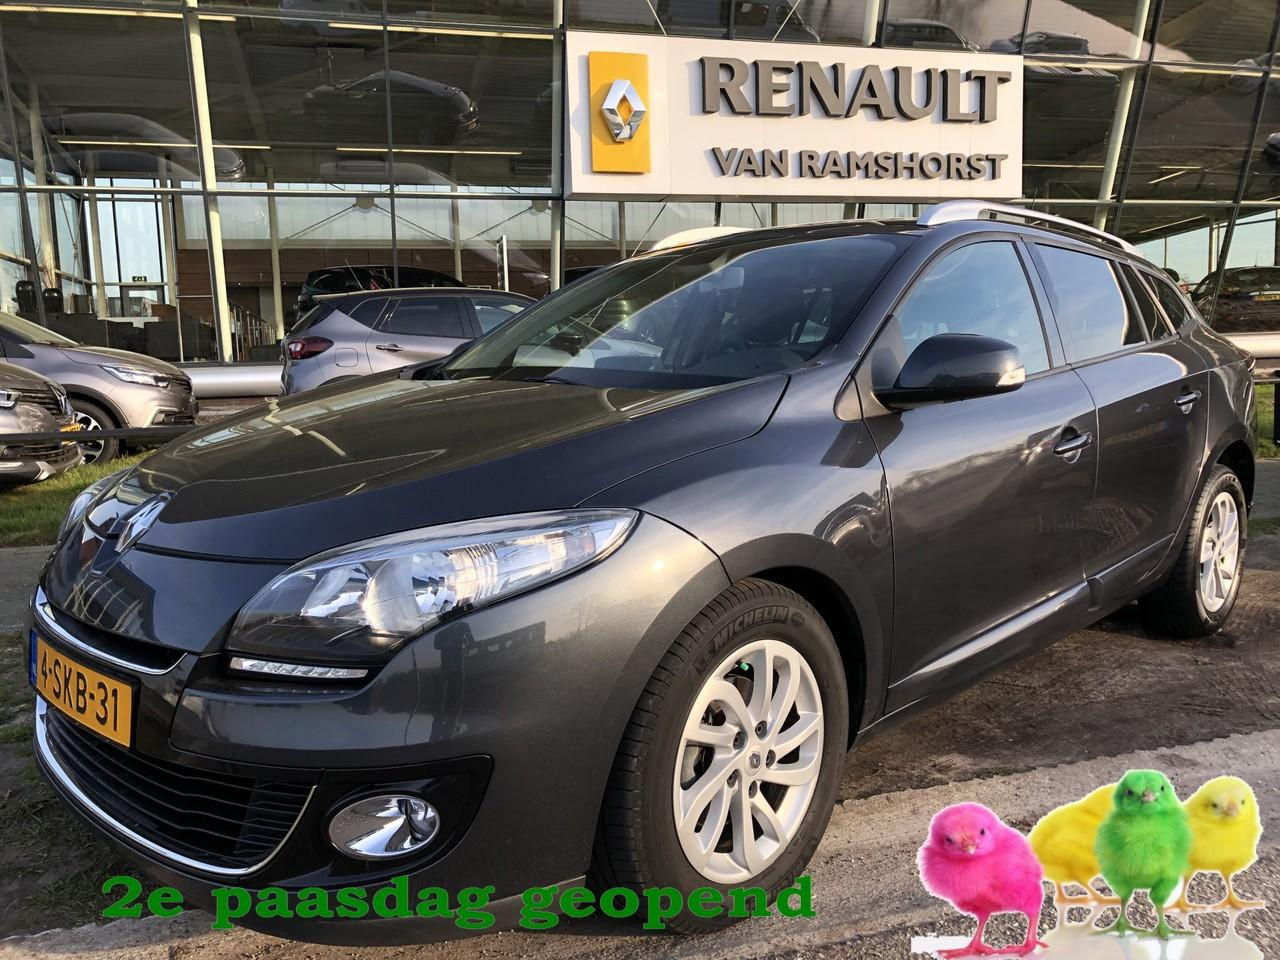 Renault Mégane Estate 1.5 dci 110pk collection pan dak keyless pdc trh. 2e paasdag open 10.00 - 17.00 uur